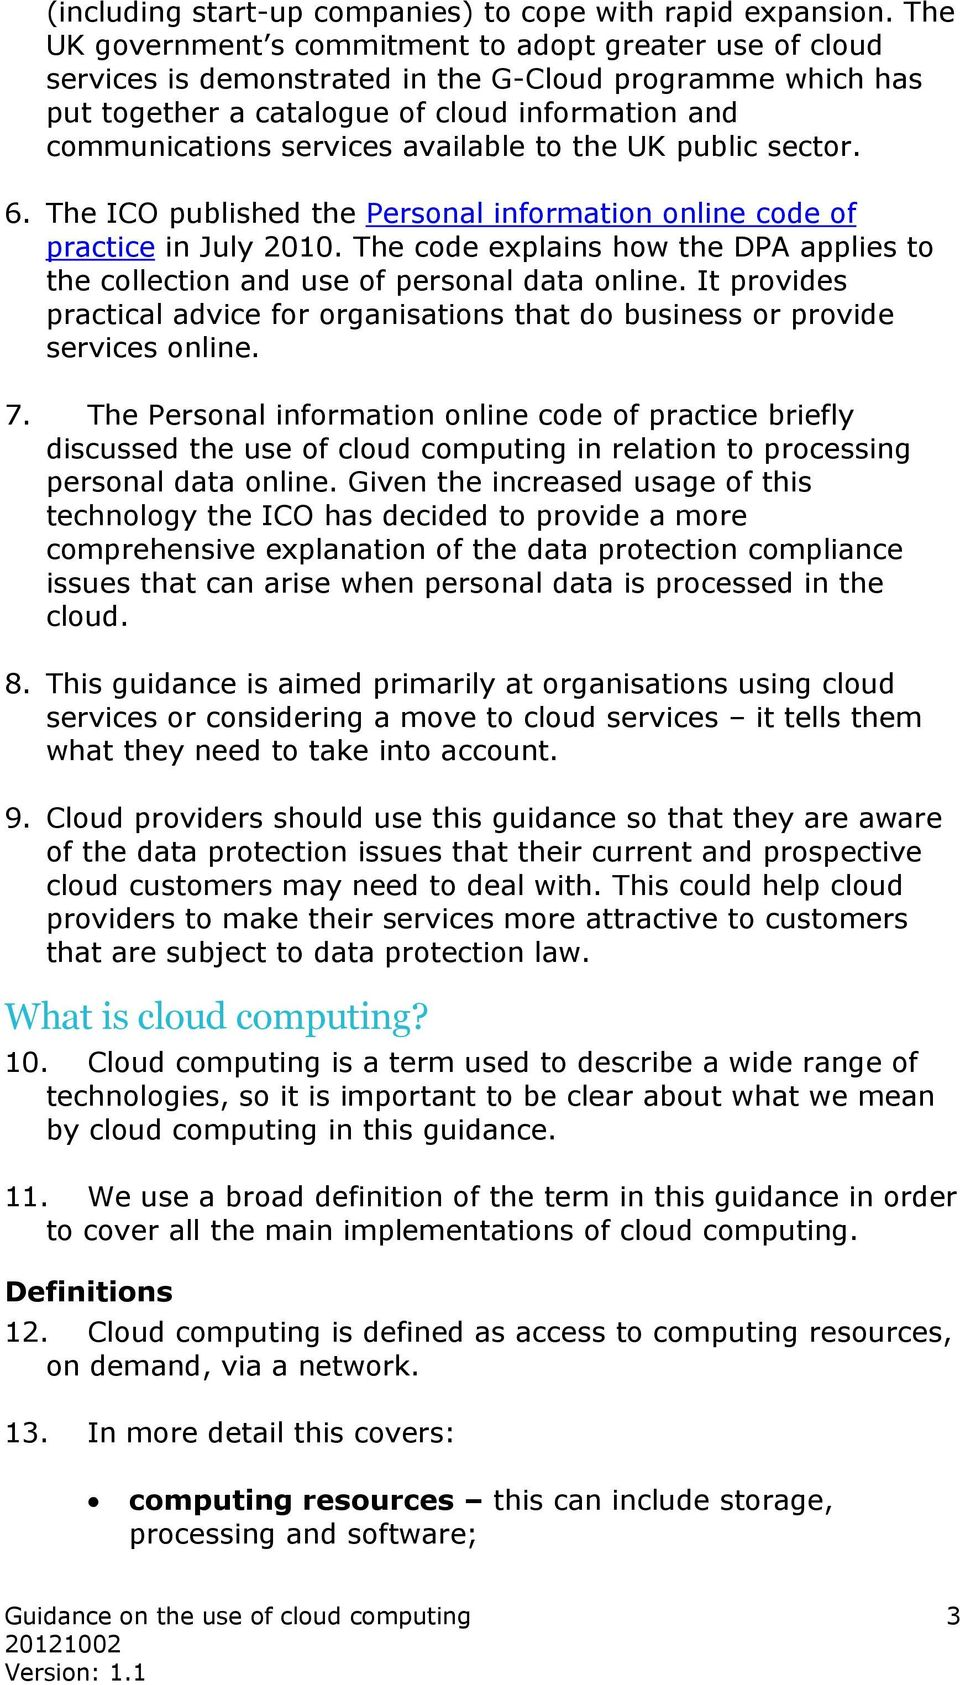 available to the UK public sector. 6. The ICO published the Personal information online code of practice in July 2010.